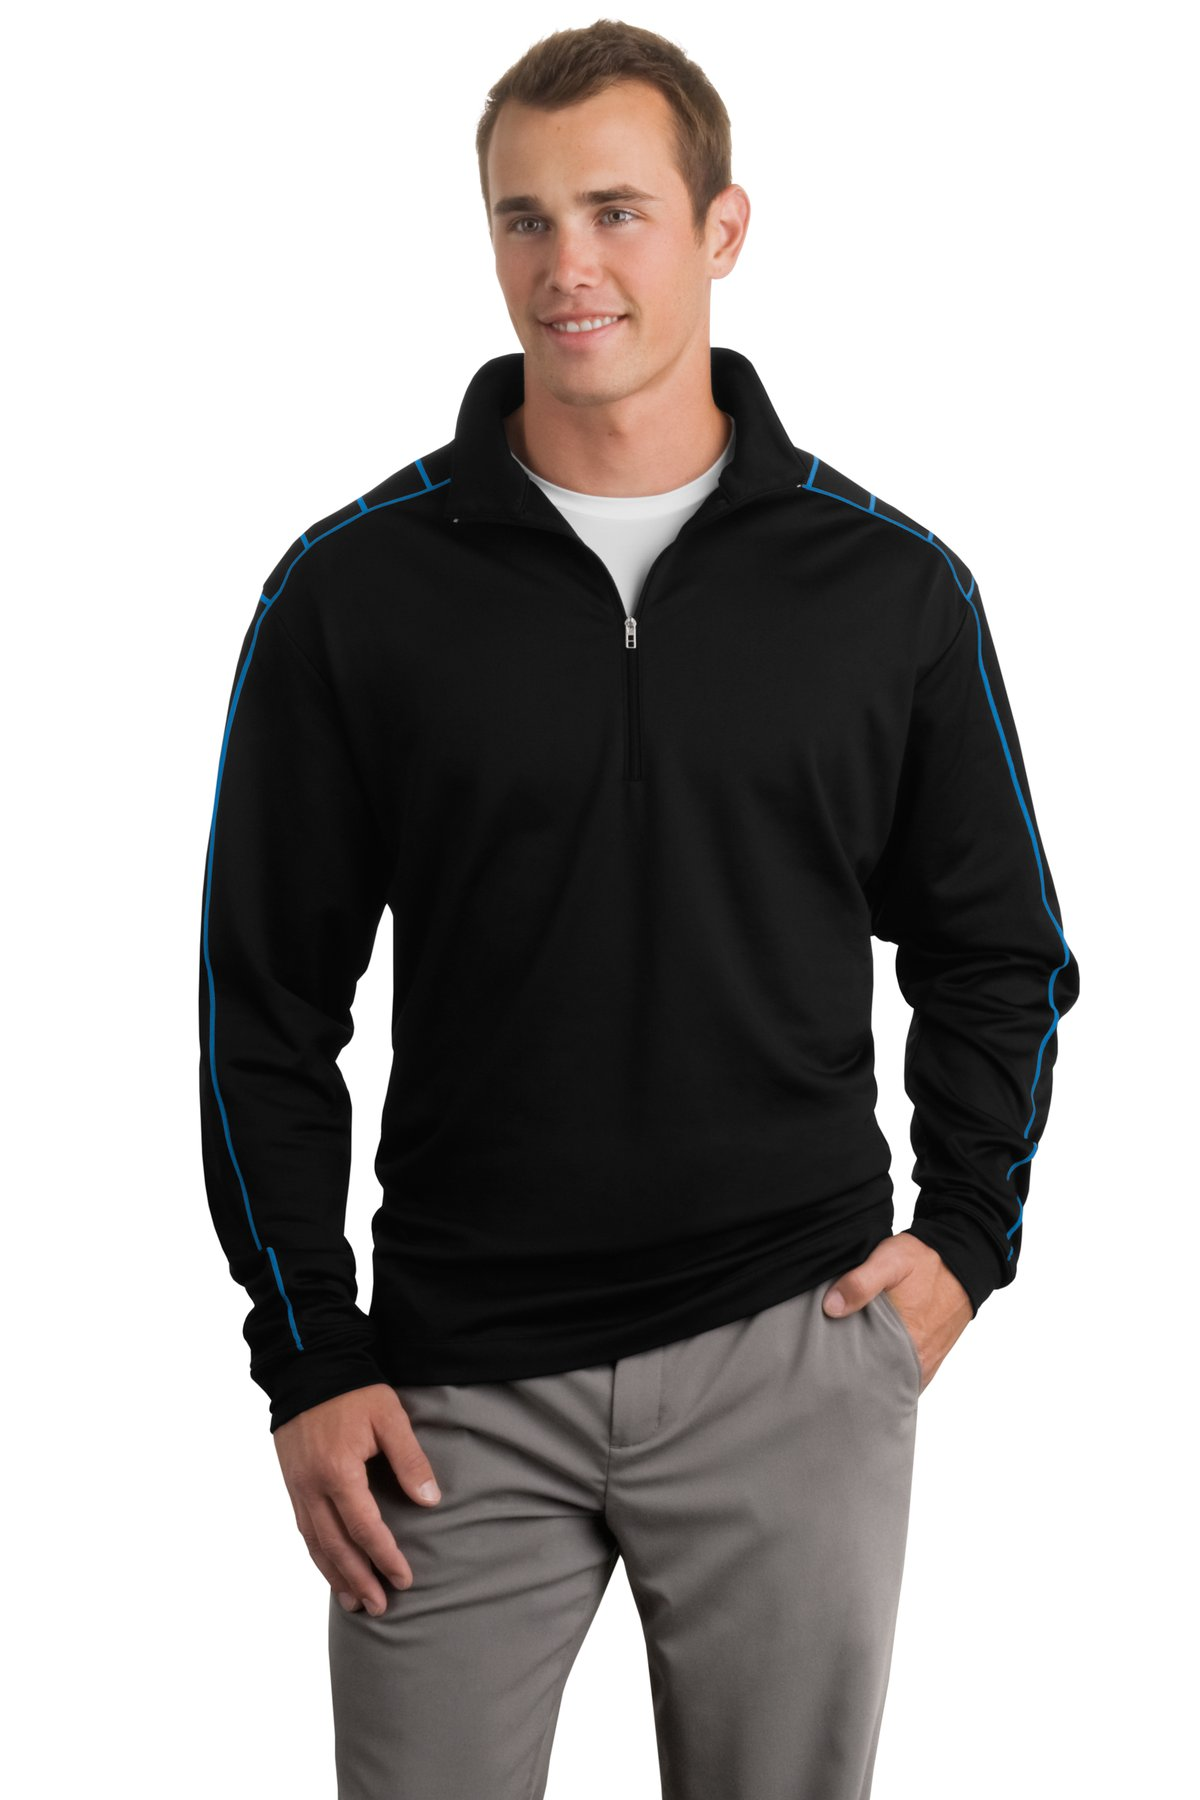 Outerwear-Polyester-Fleece-1